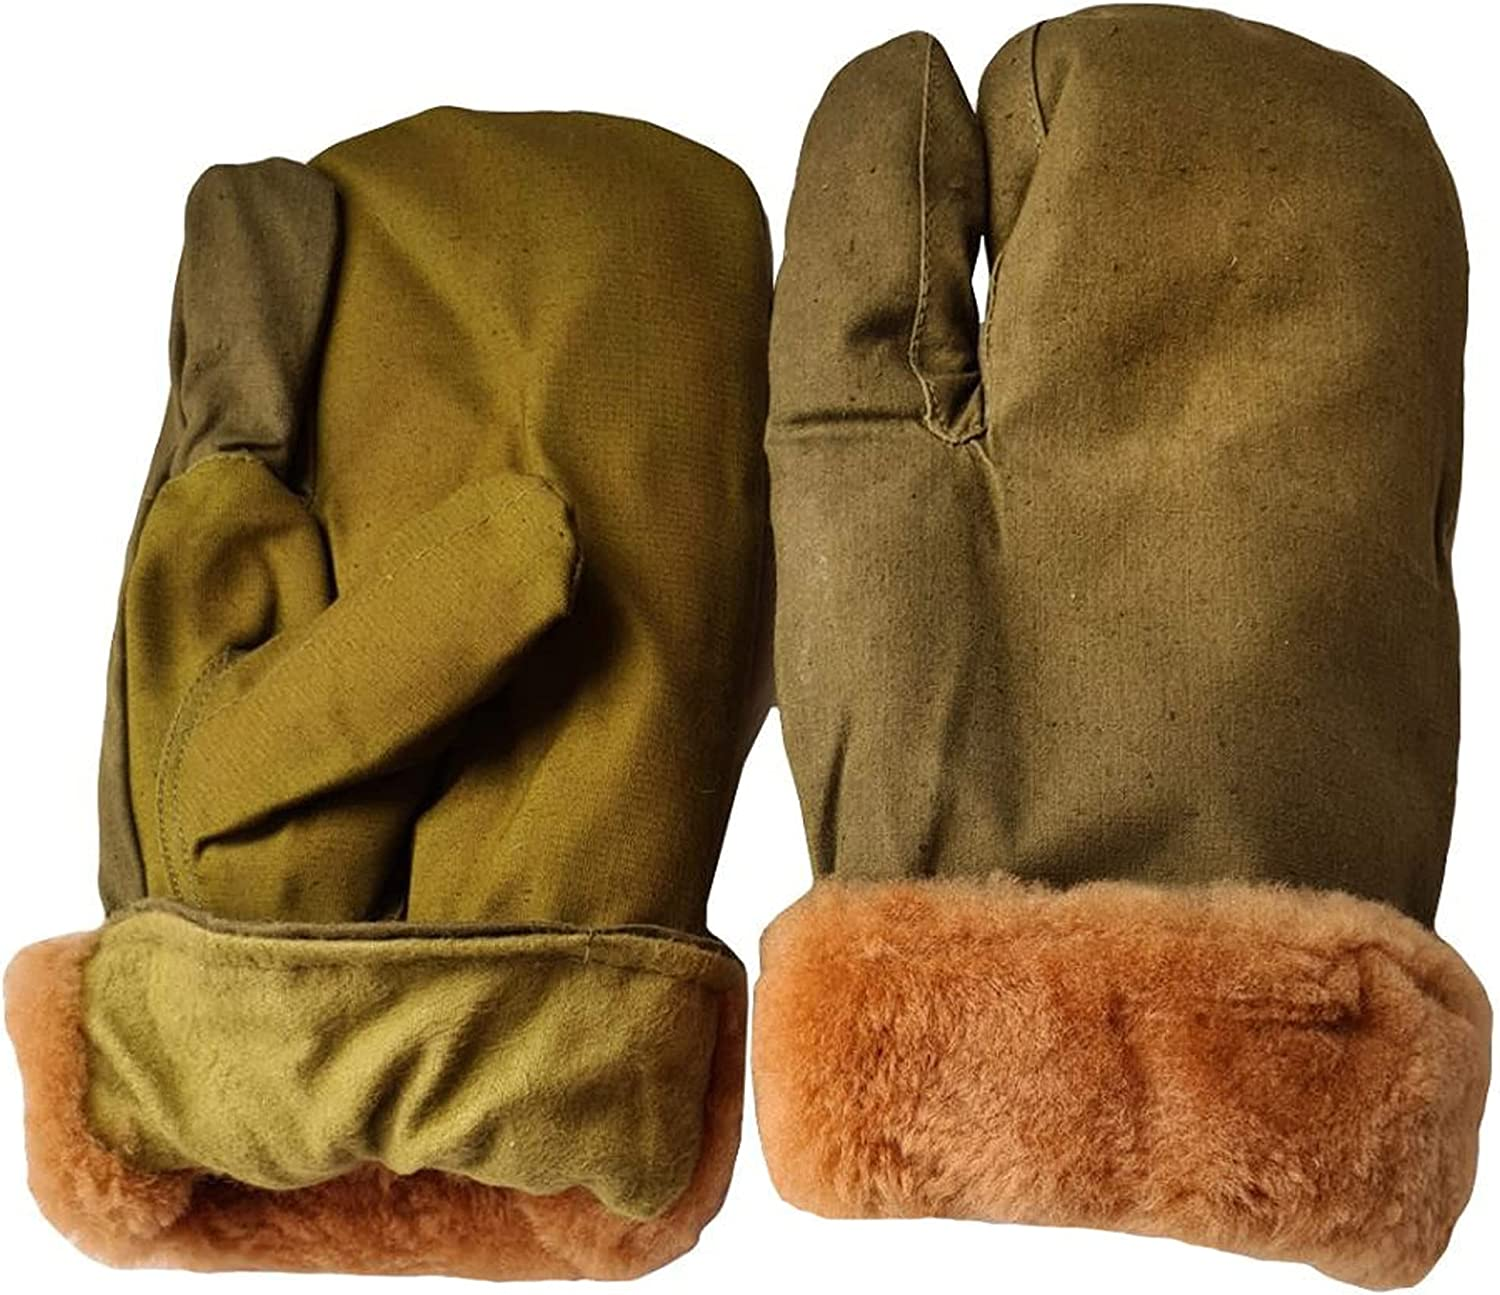 Russian military Winter Khaki gloves Warm mittens with fur Russian tactical gloves Men's work gloves